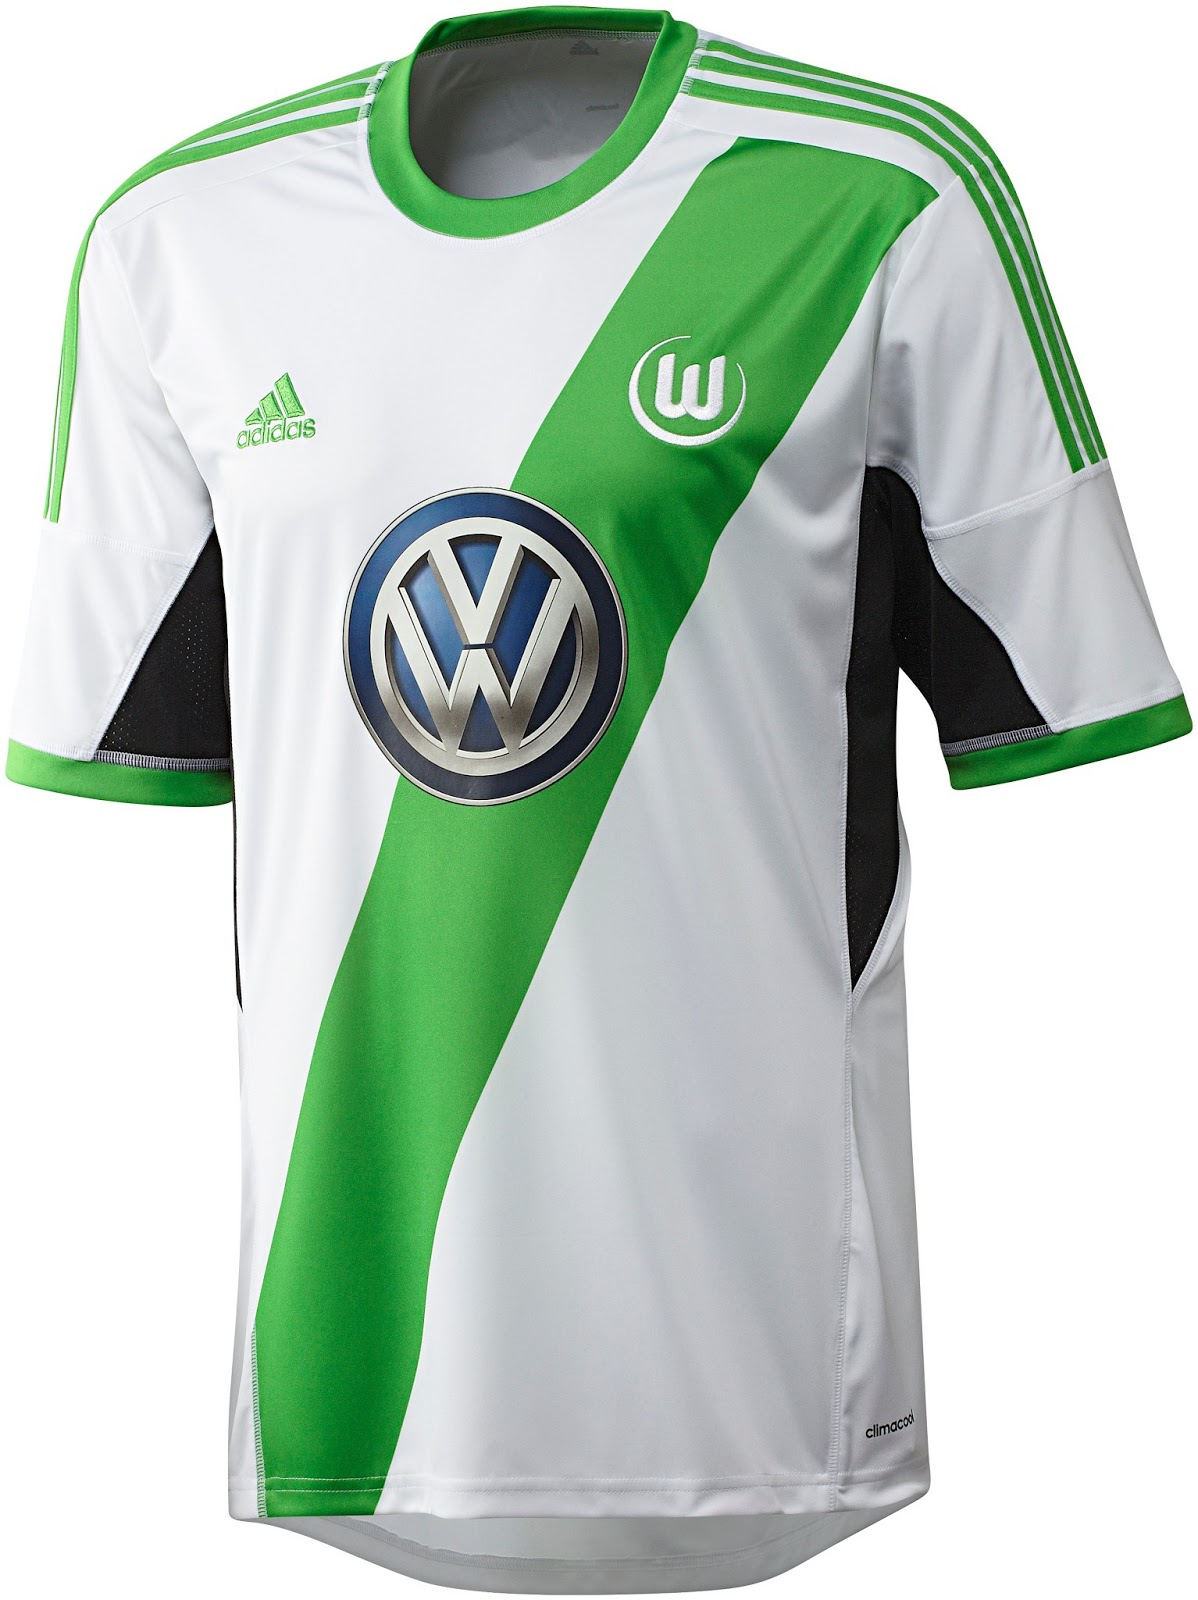 Vfl Wolfsburg 13 14 2013 14 Home And Away Kits Released